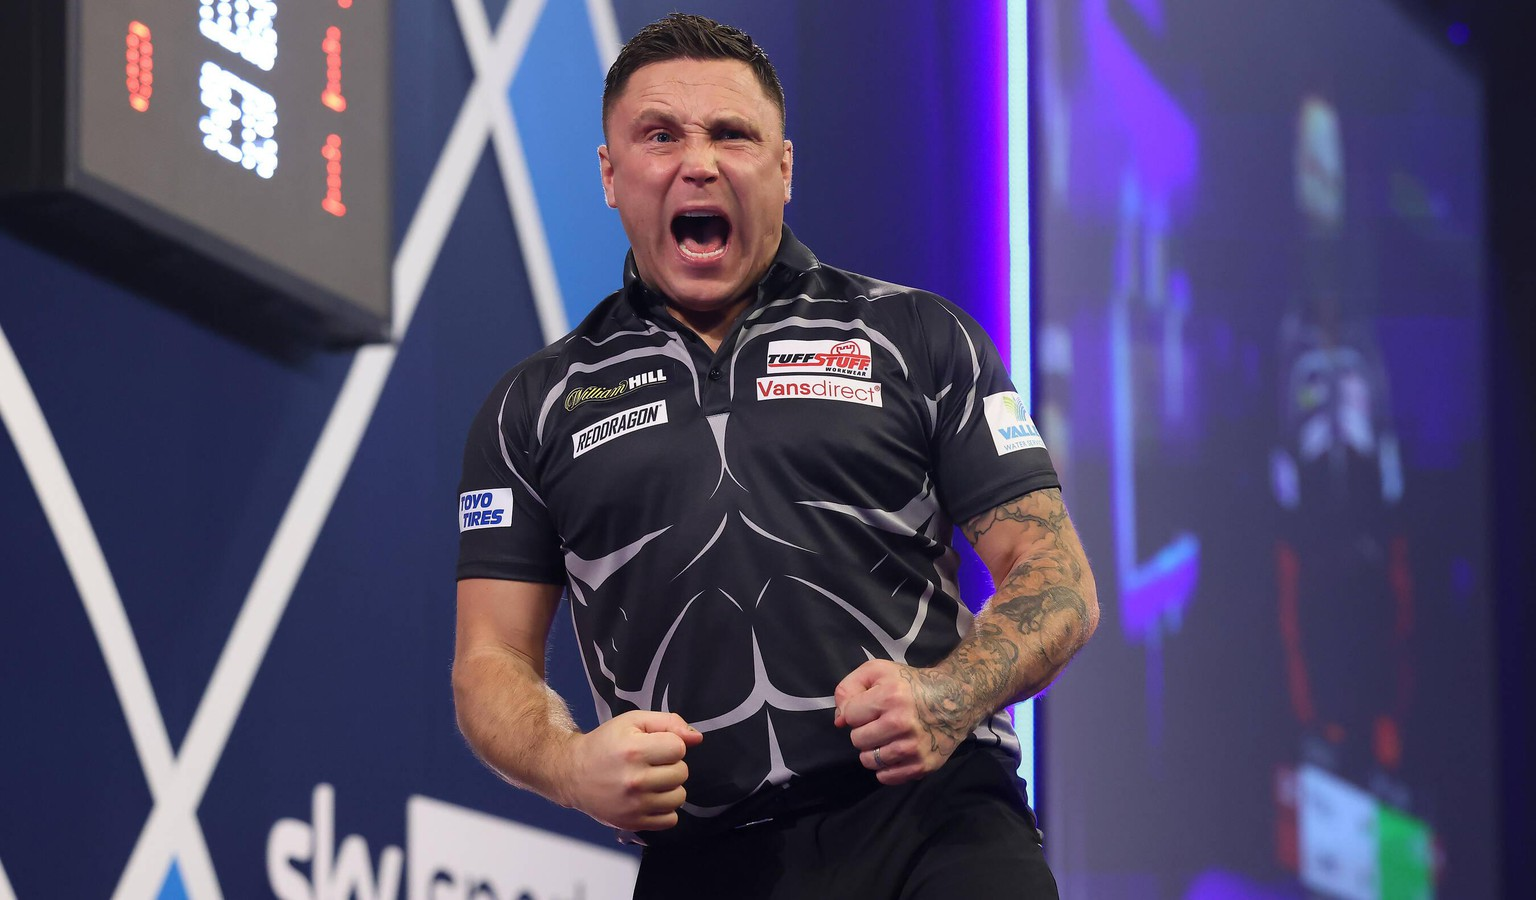 William Hill World Darts Championship 21/12/2020. Gerwyn Price celebrates winning during the William Hill World Darts Championship at Alexandra Palace, London, United Kingdom on 21 December 2020. Editorial use only PUBLICATIONxNOTxINxUK , Copyright: xNigelxKeenex PSI-11379-0067